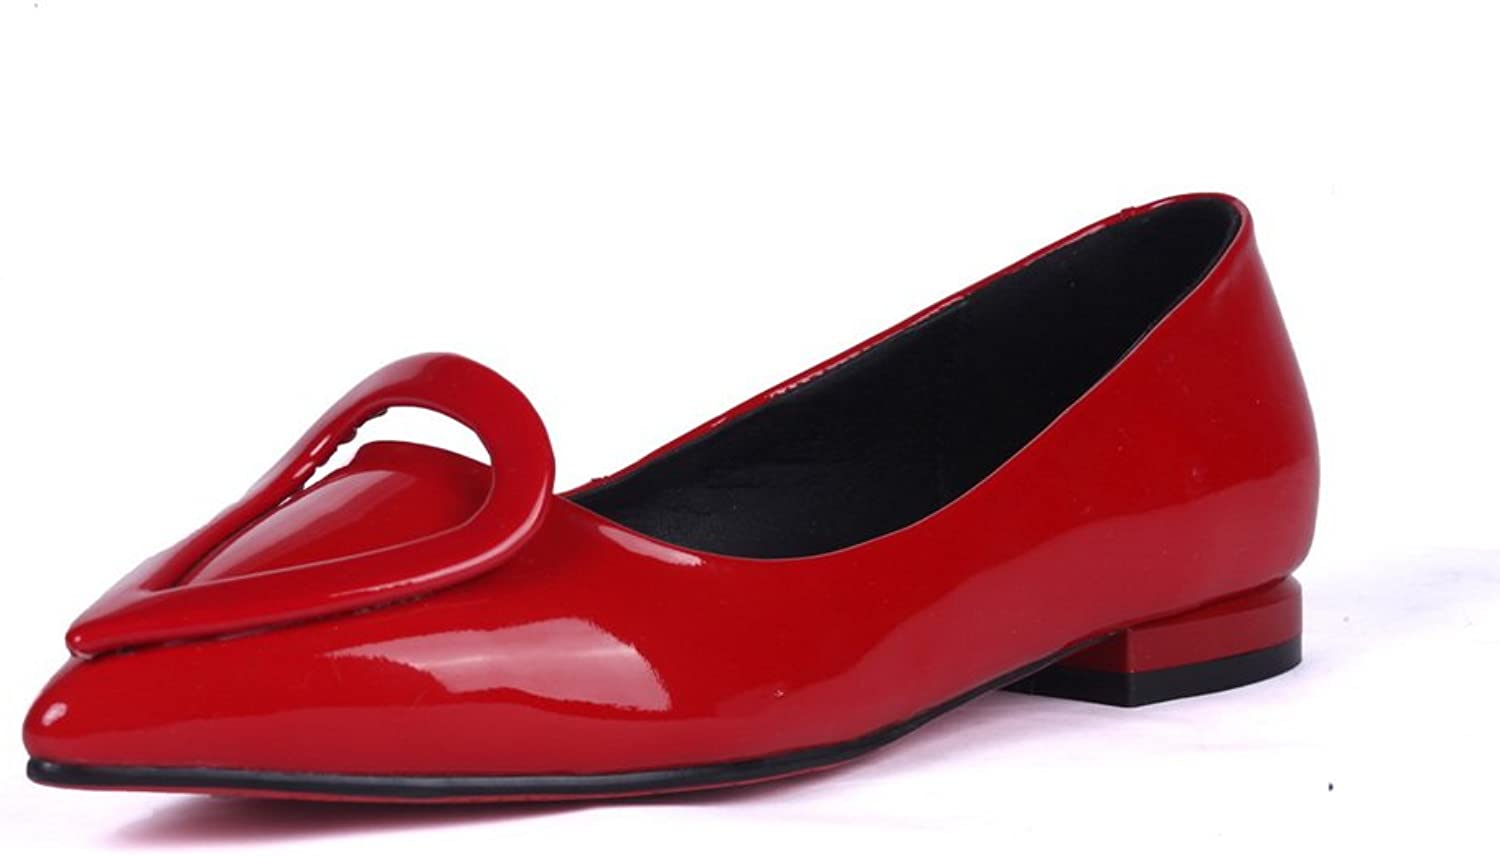 1TO9 Womens Low-Cut Uppers Dance-Modern Solid Red Patent Leather Pumps-shoes - 4.5 B(M) US